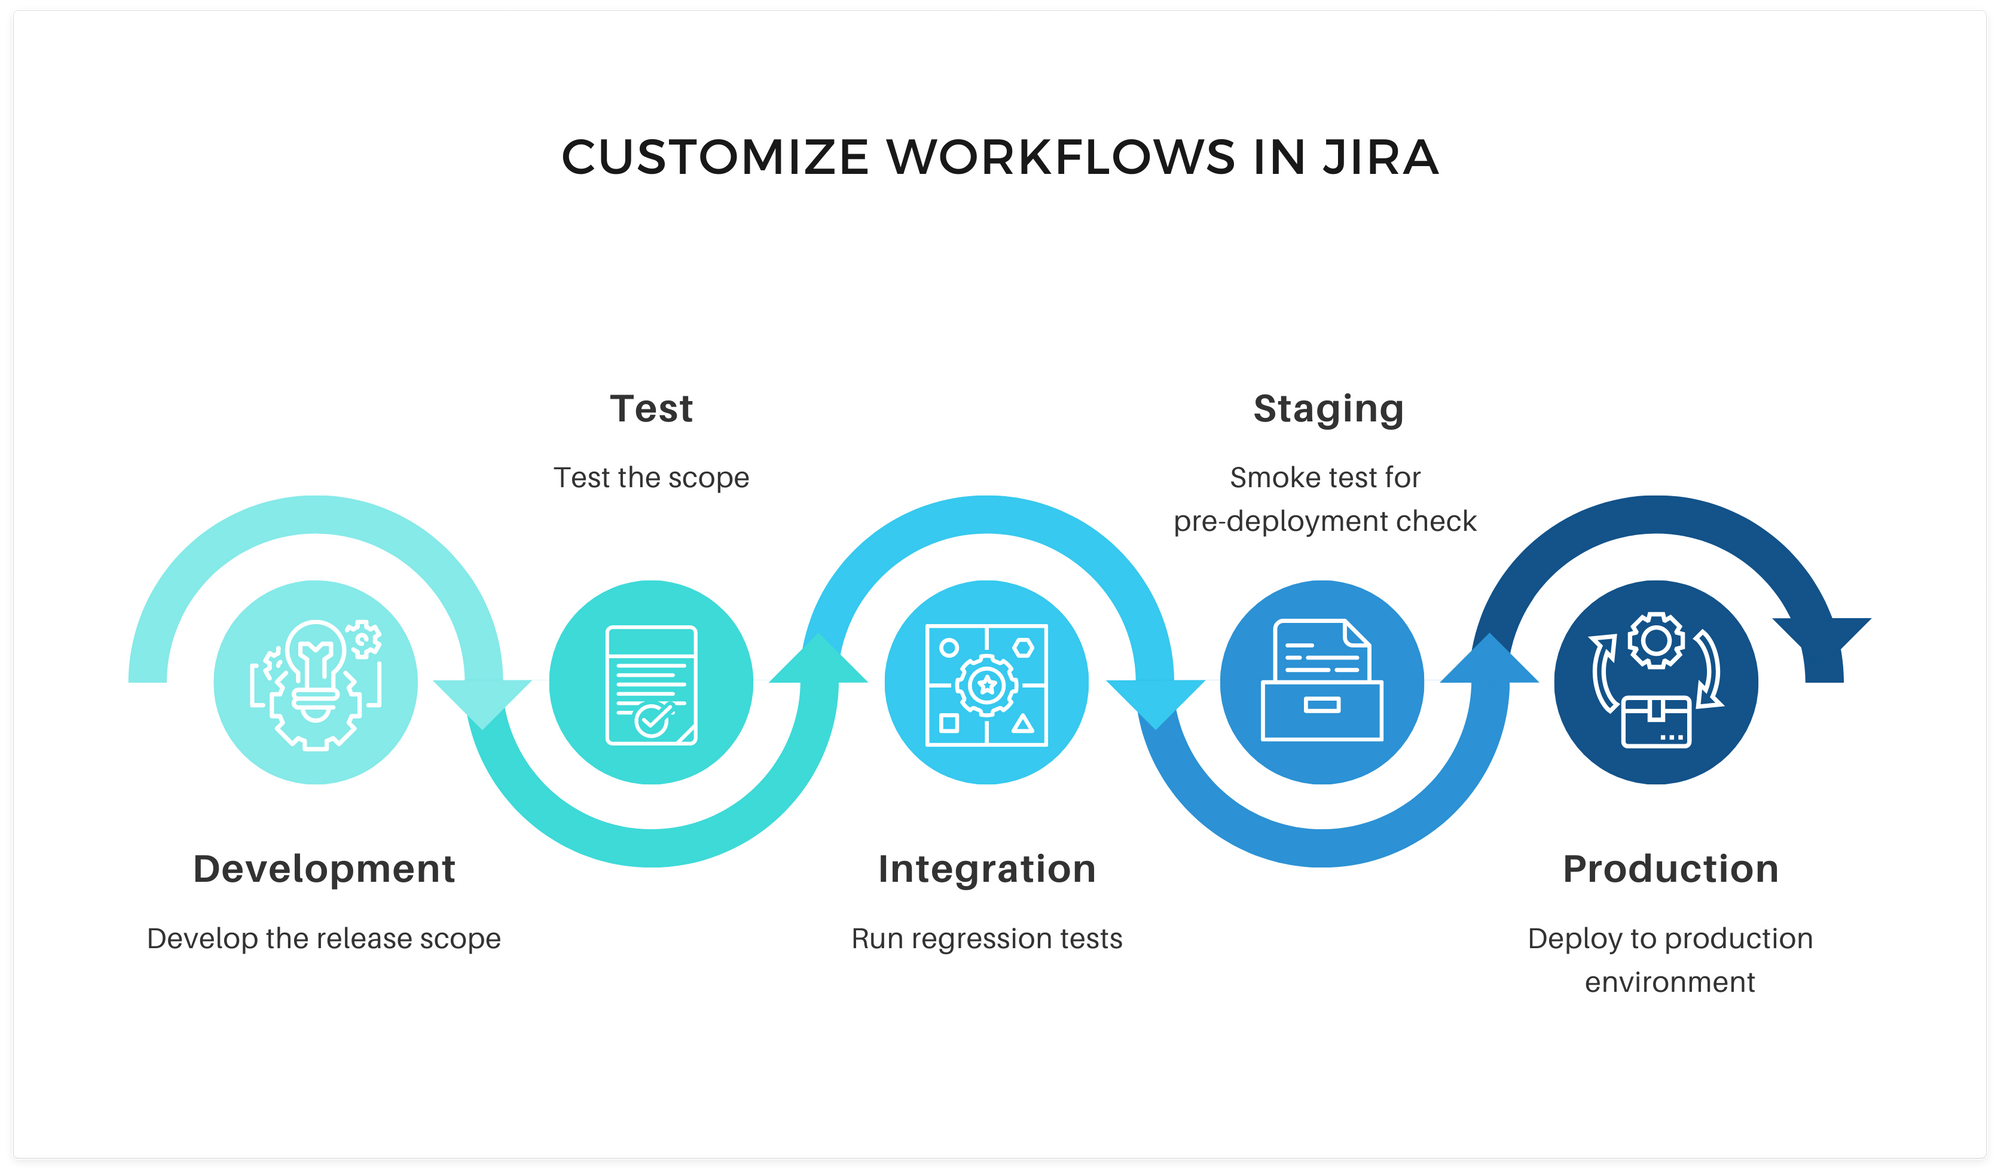 Customize workflows for efficient work management in Jira